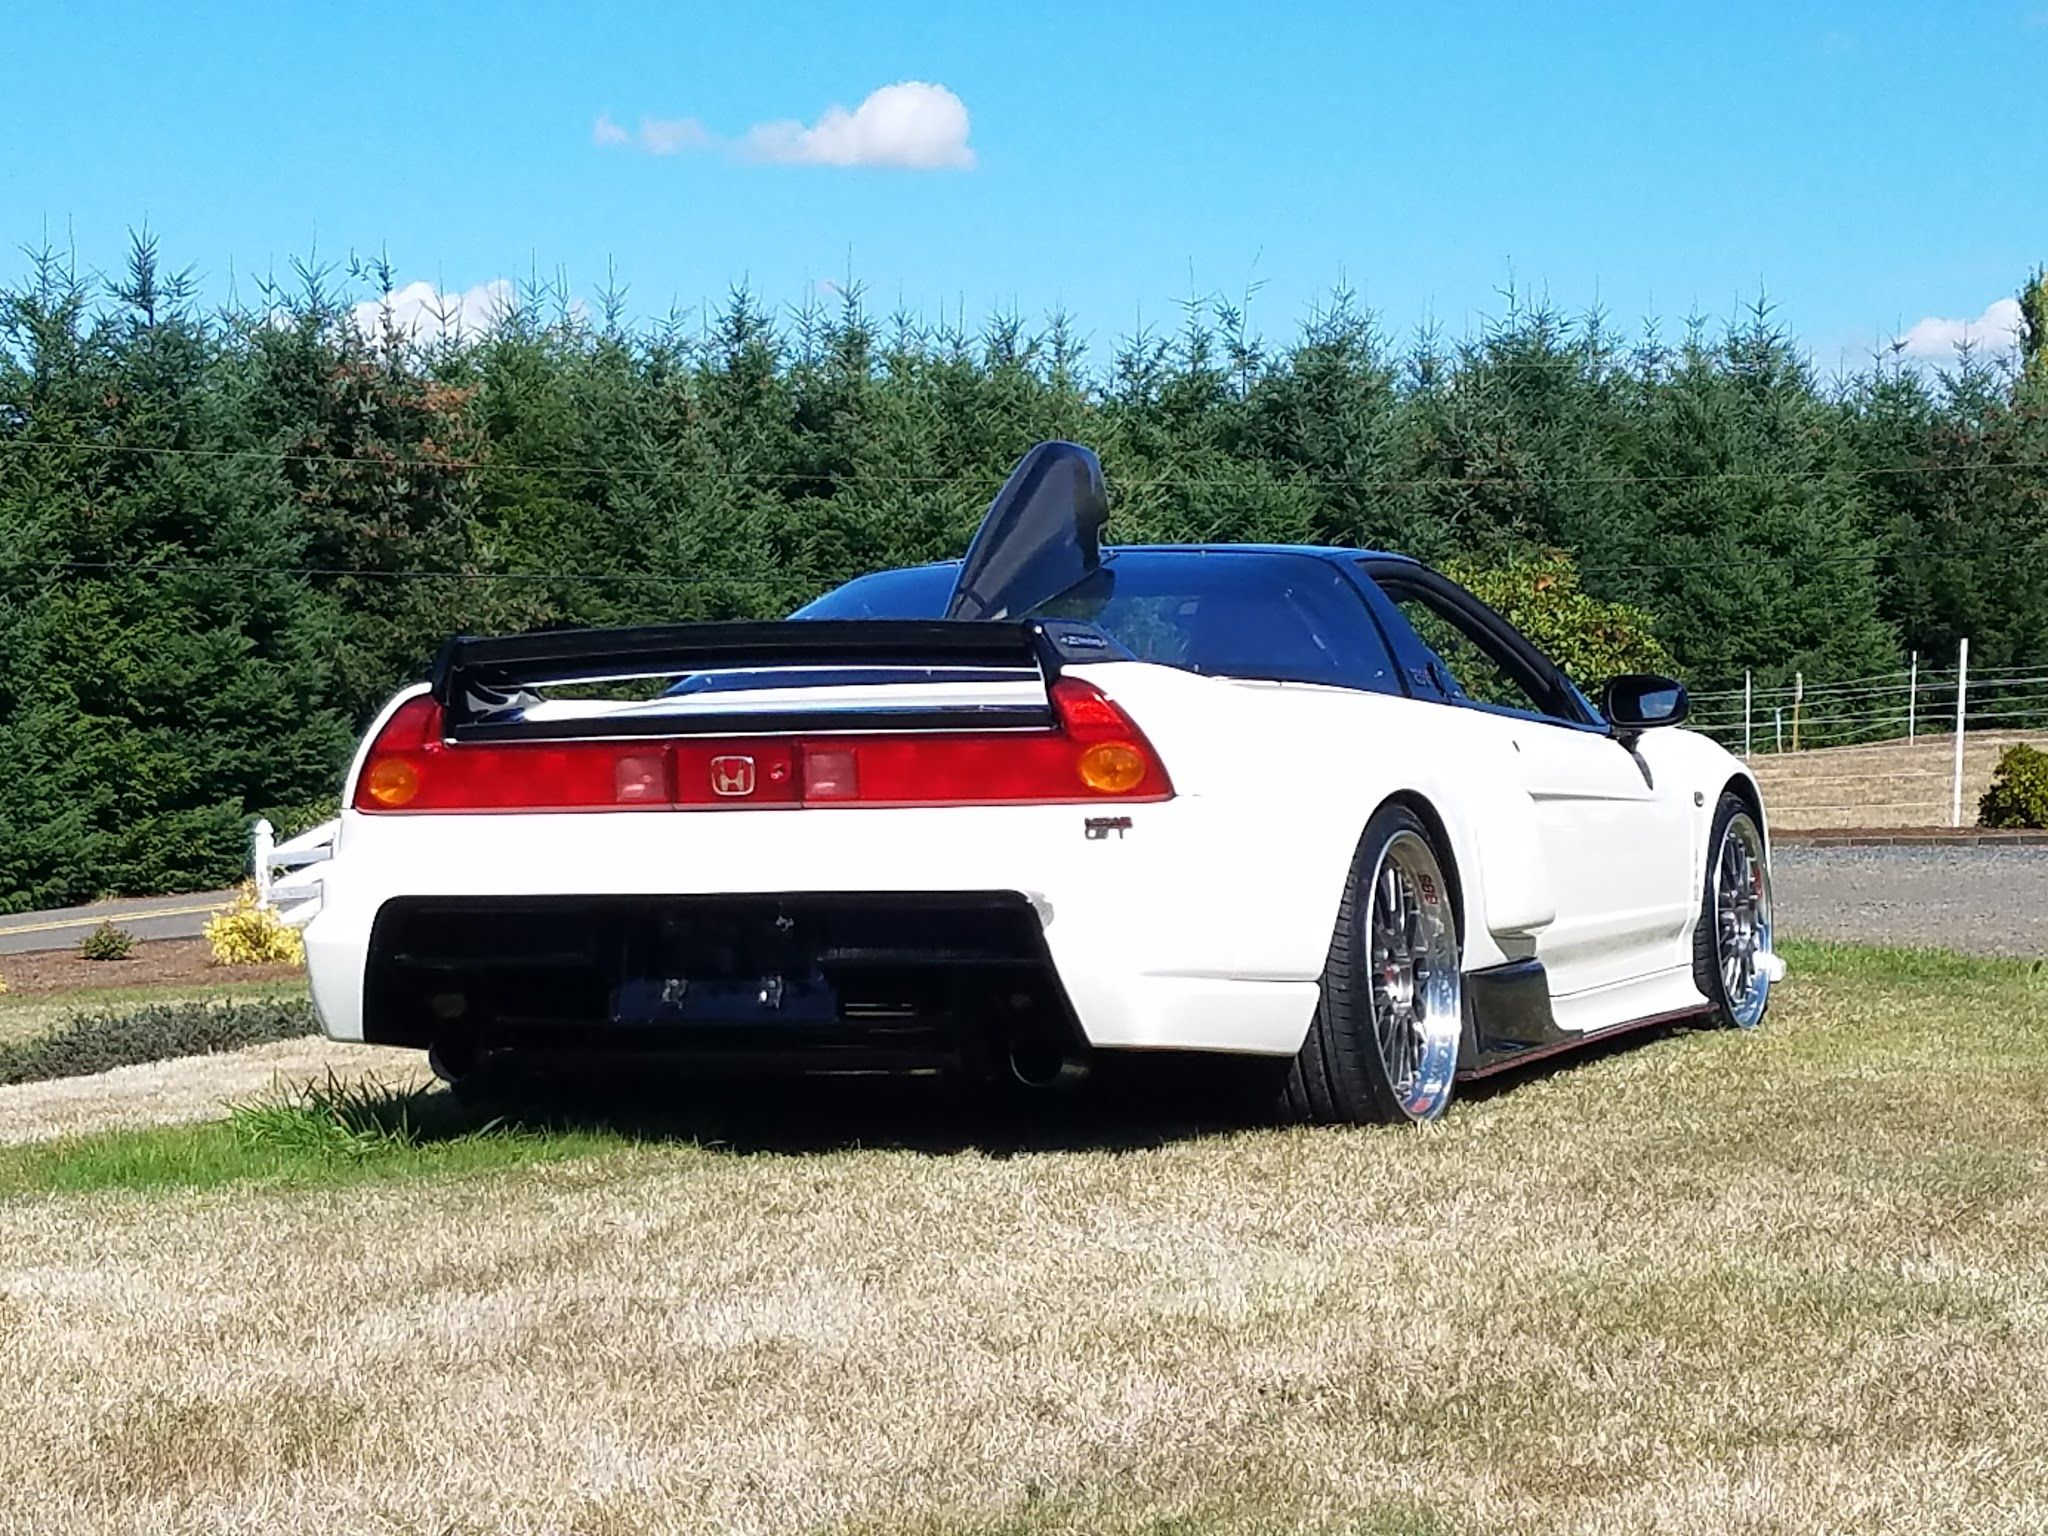 NSX 1991 Honda NSX R GT replica imported from Japan. For